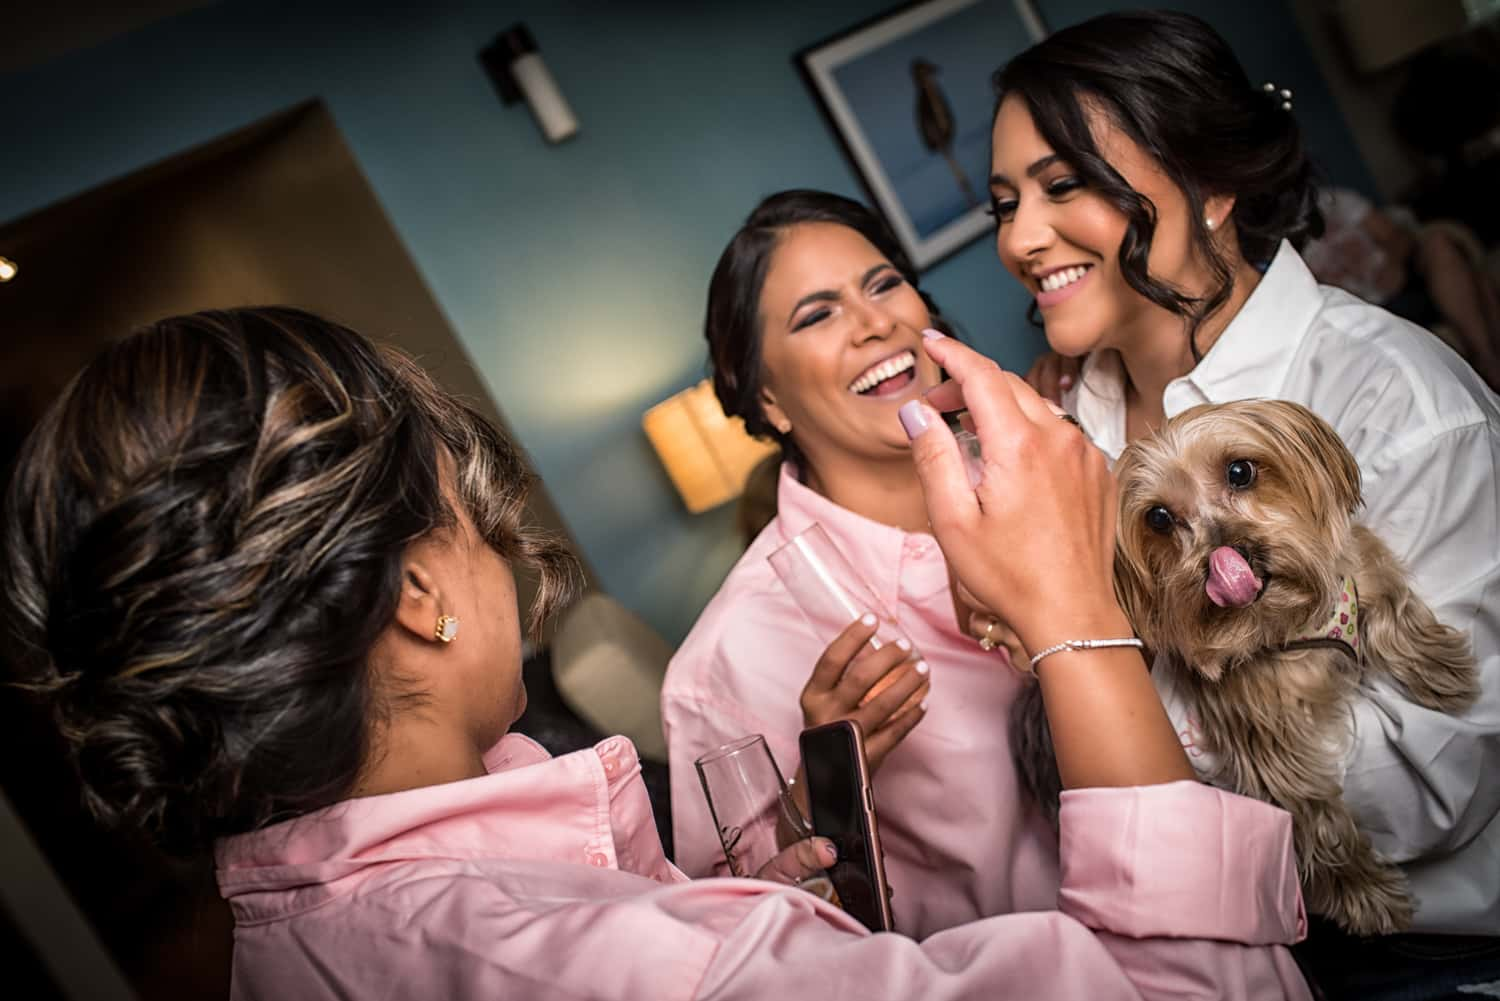 Bridesmaids in pink shirts laughing and smiling